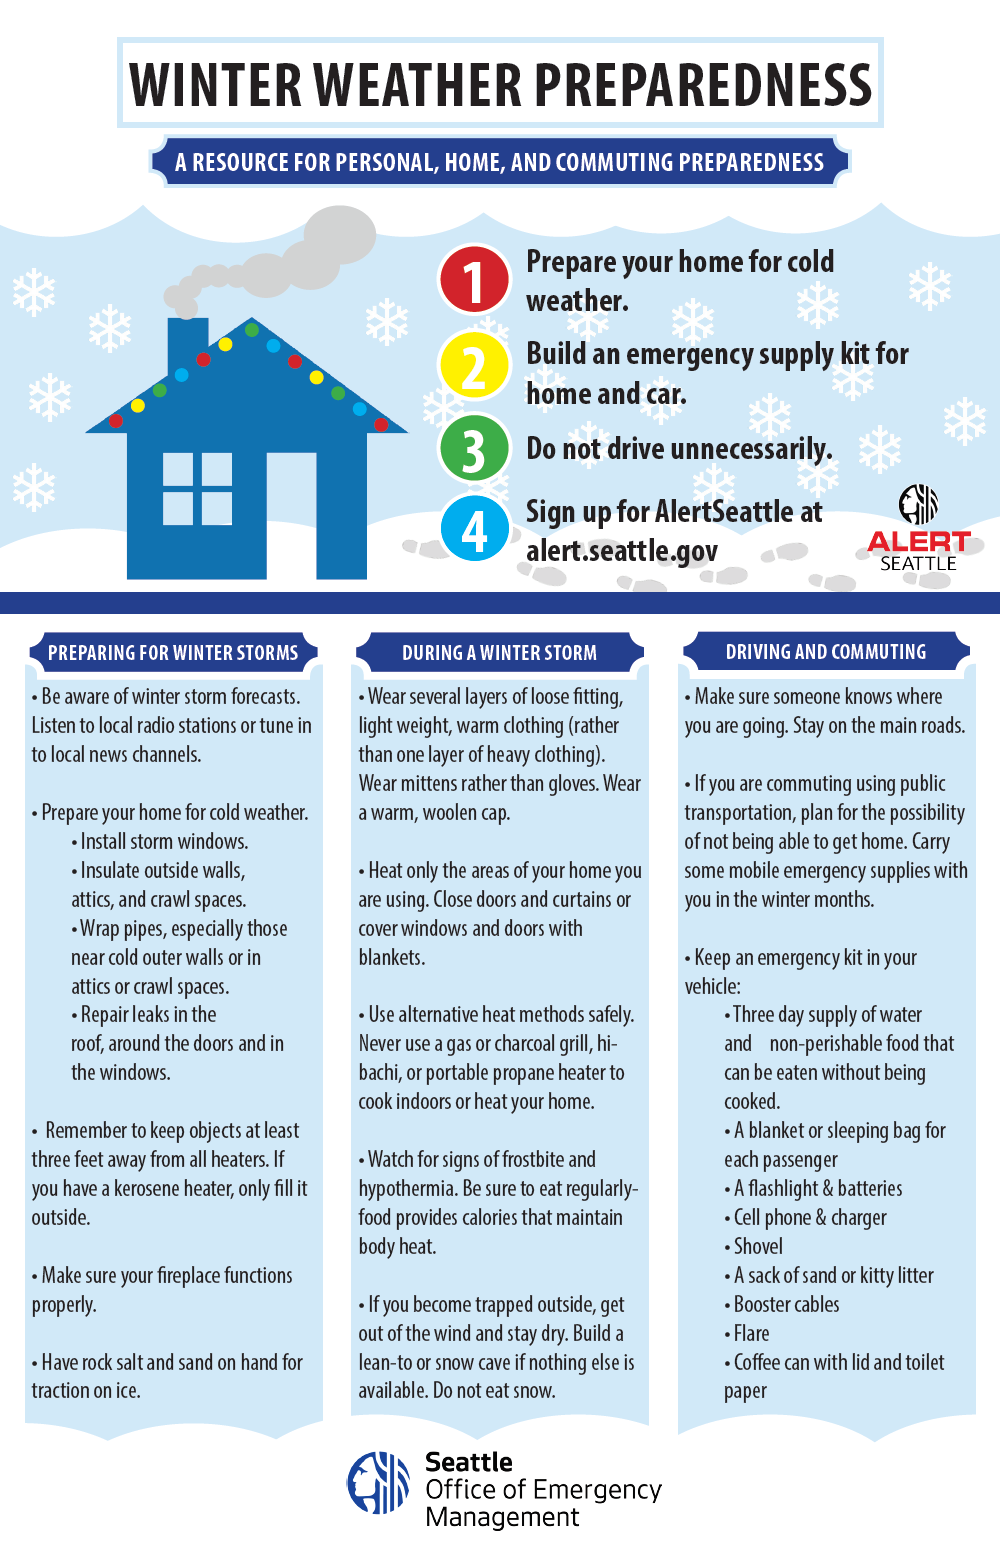 Tips on winter weather preparedness